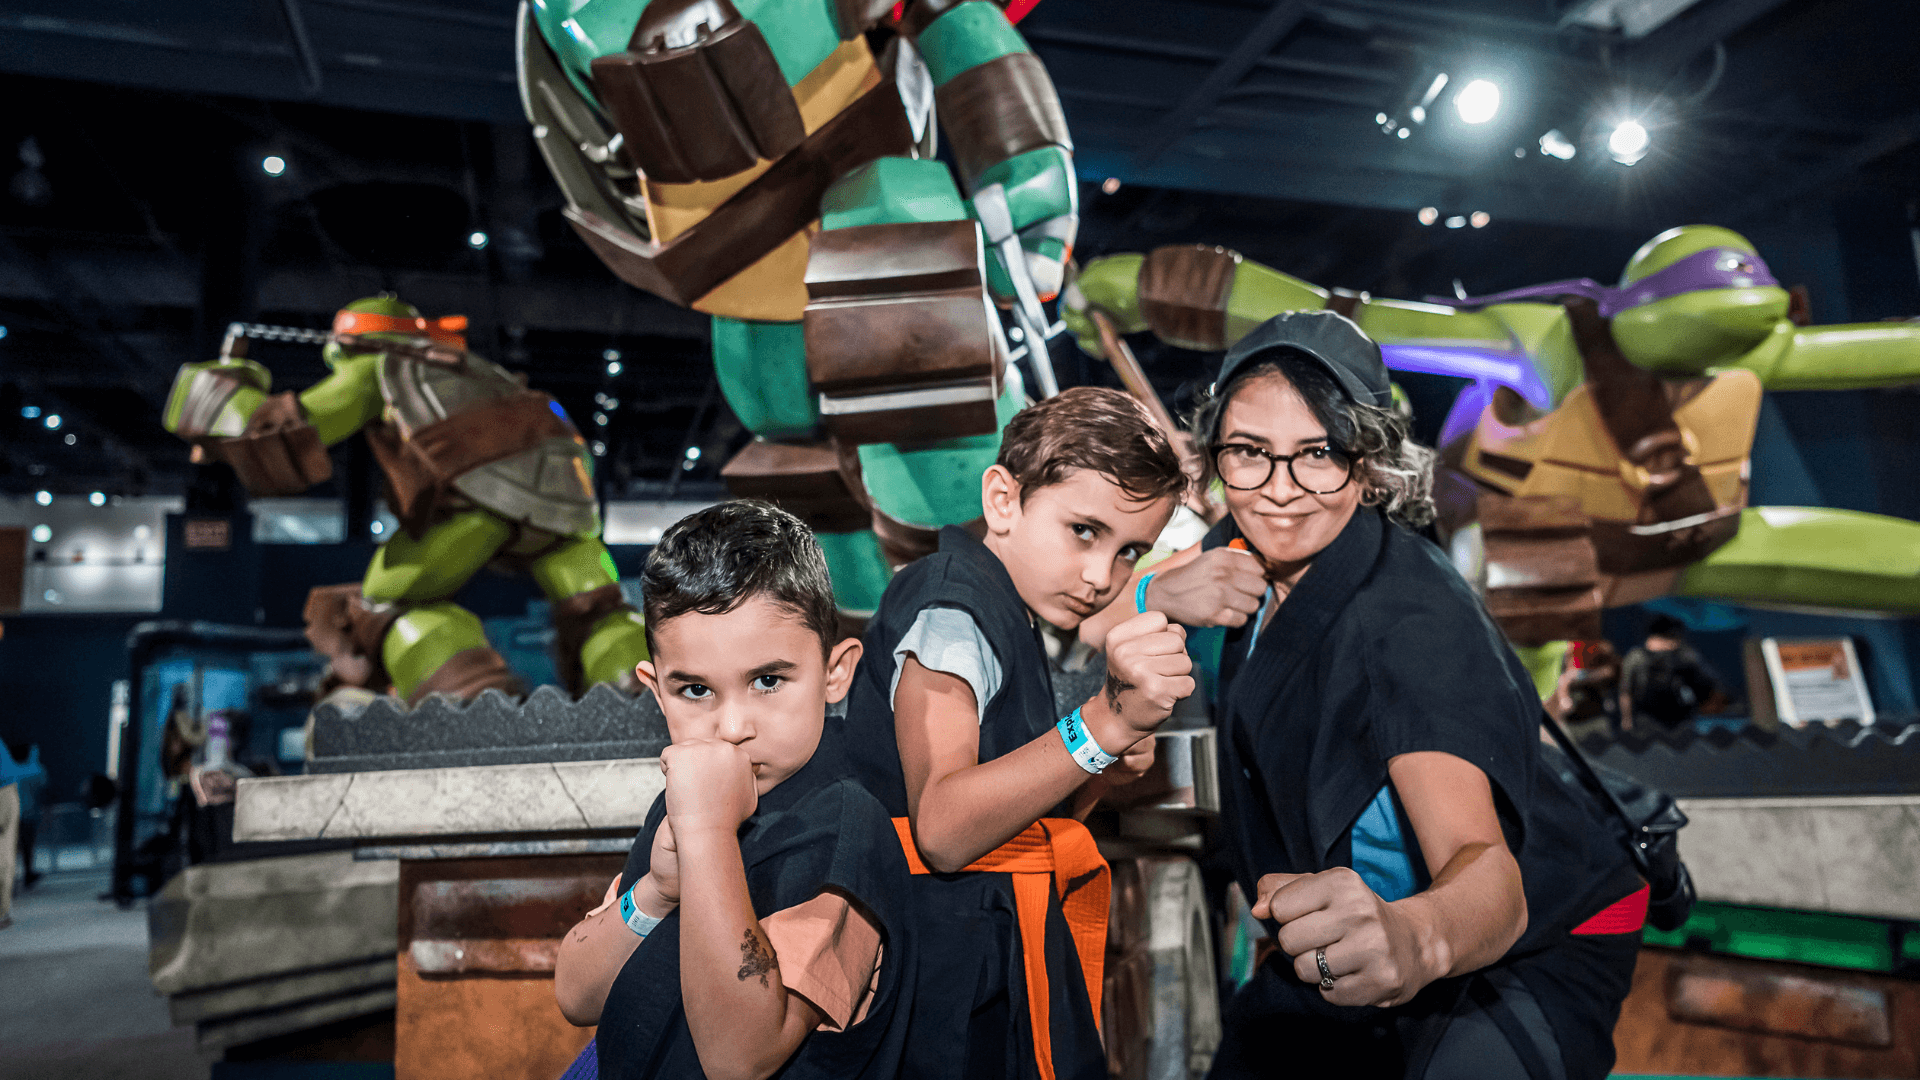 Image of guests posing in front of Teenage Mutant Ninja Turtles